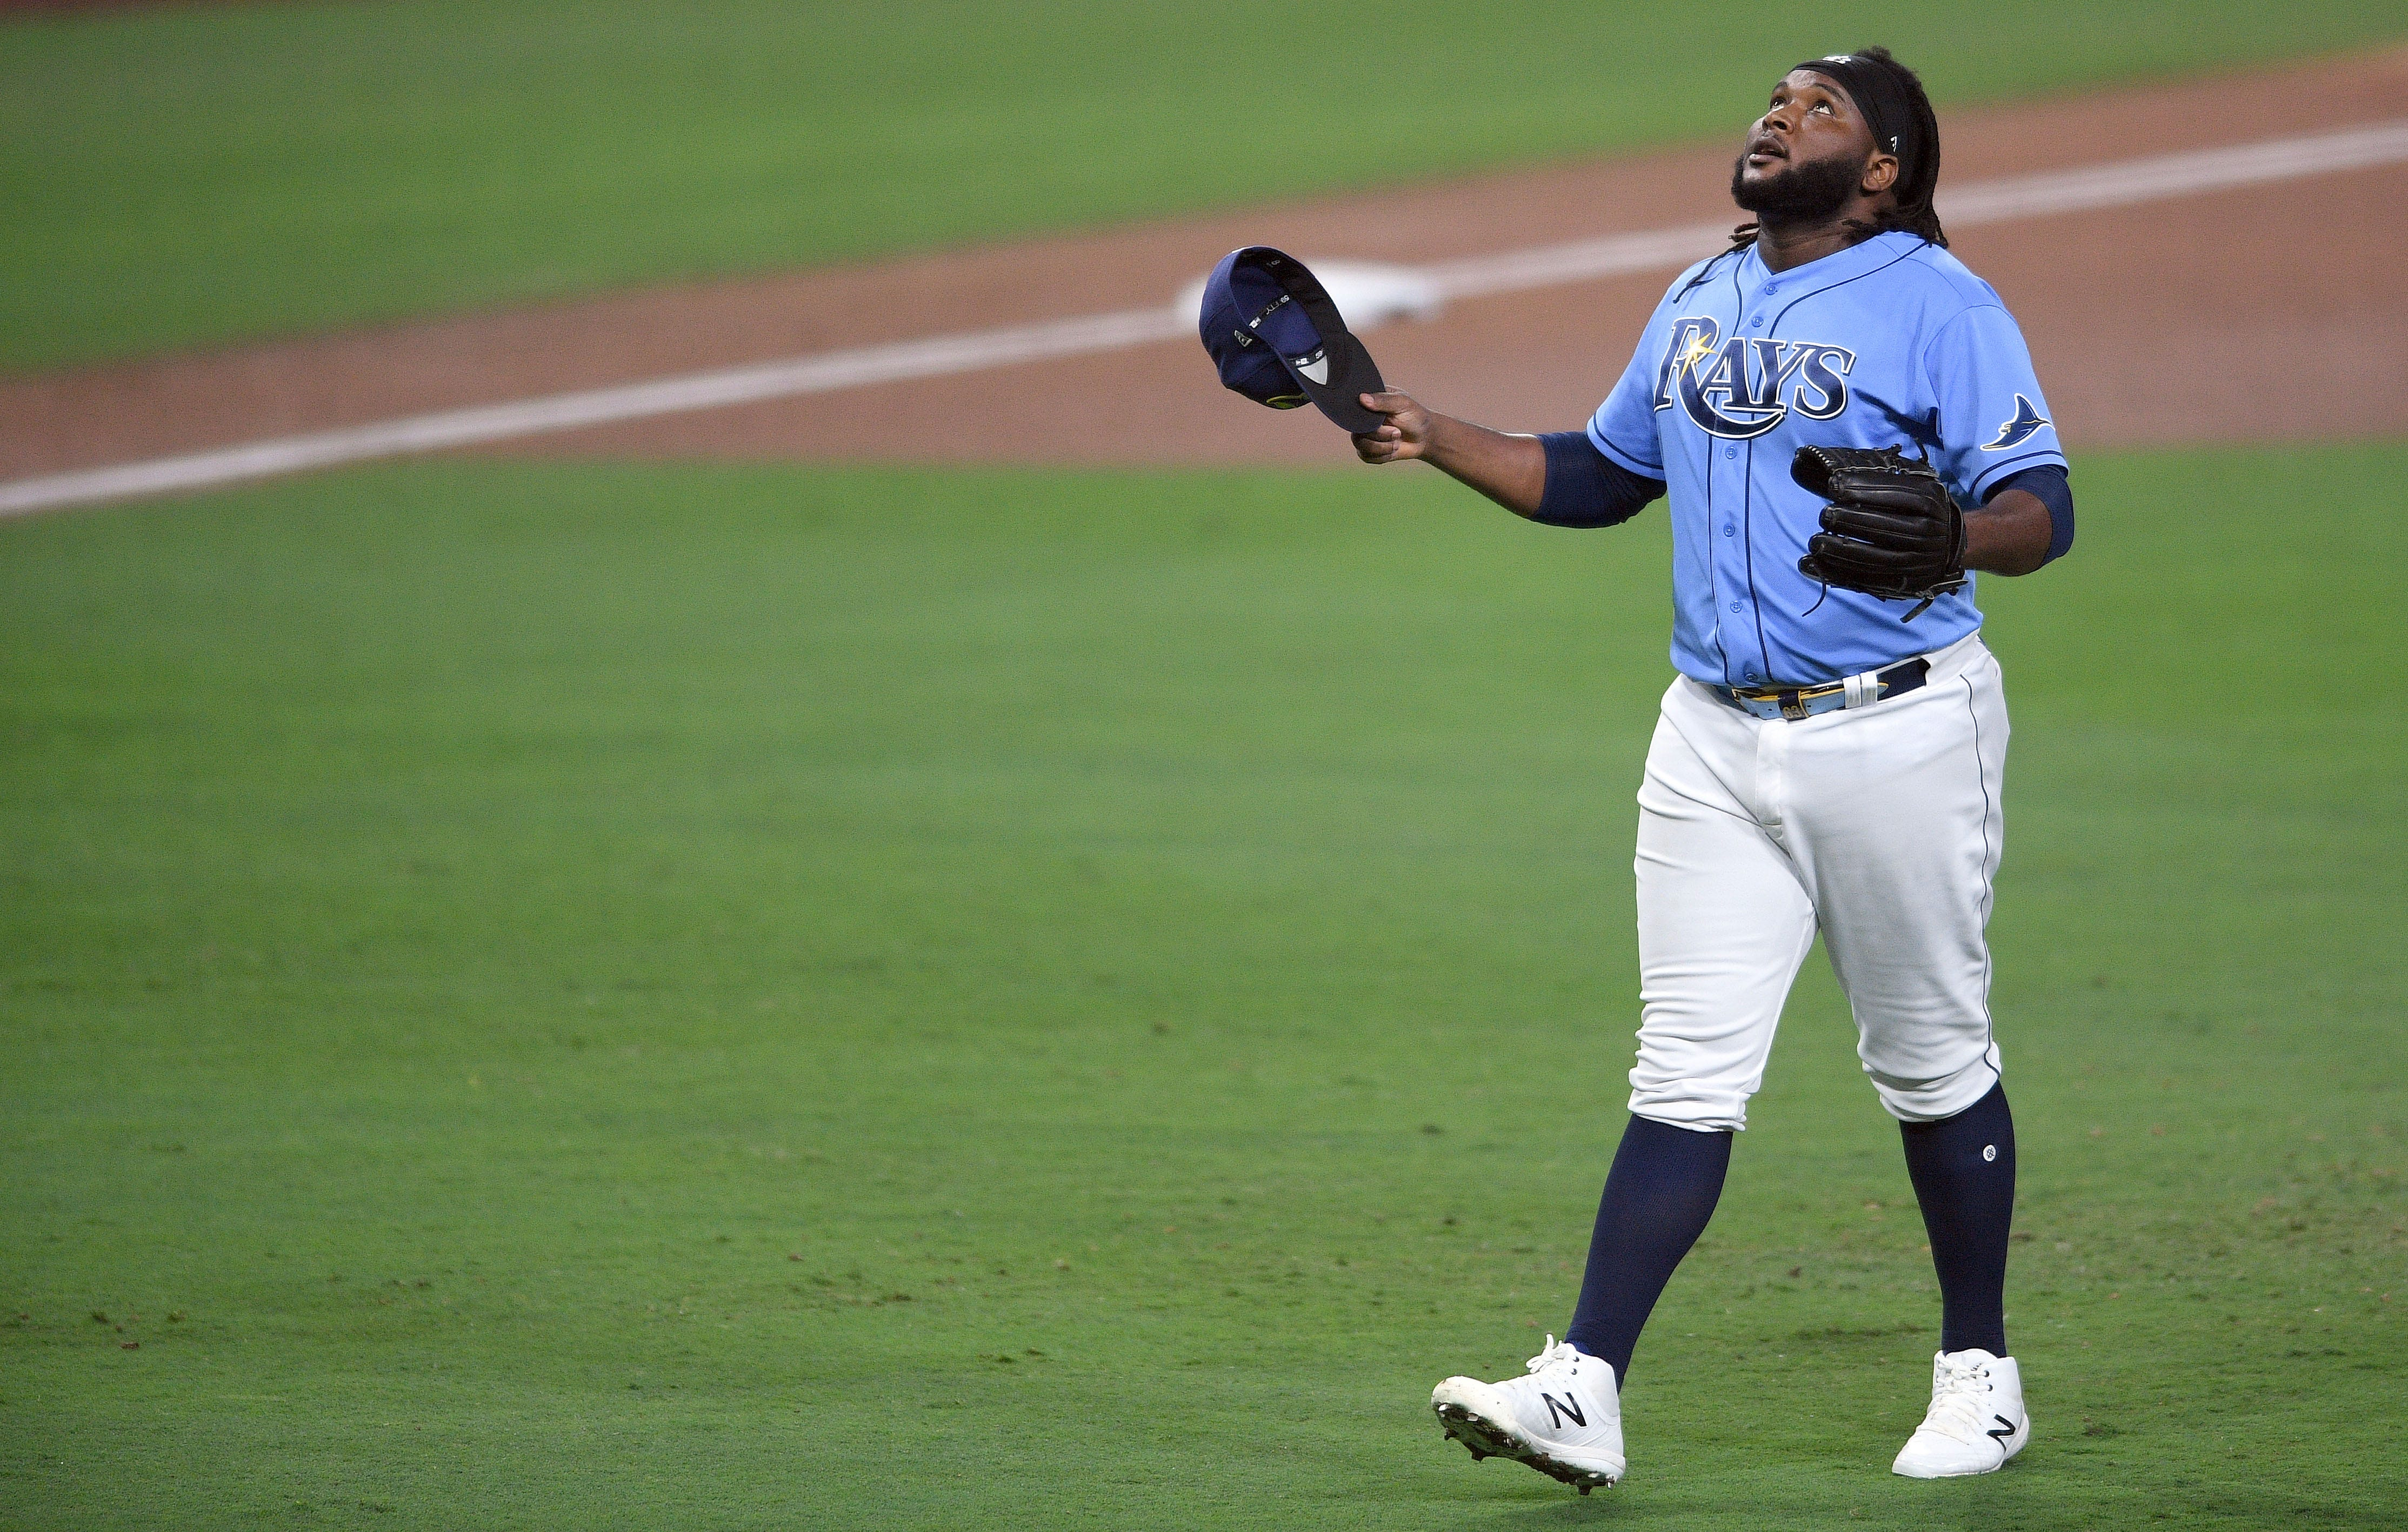 Rays bullpen shuts down Houston Astros as Tampa Bay takes Game 1 of ALCS